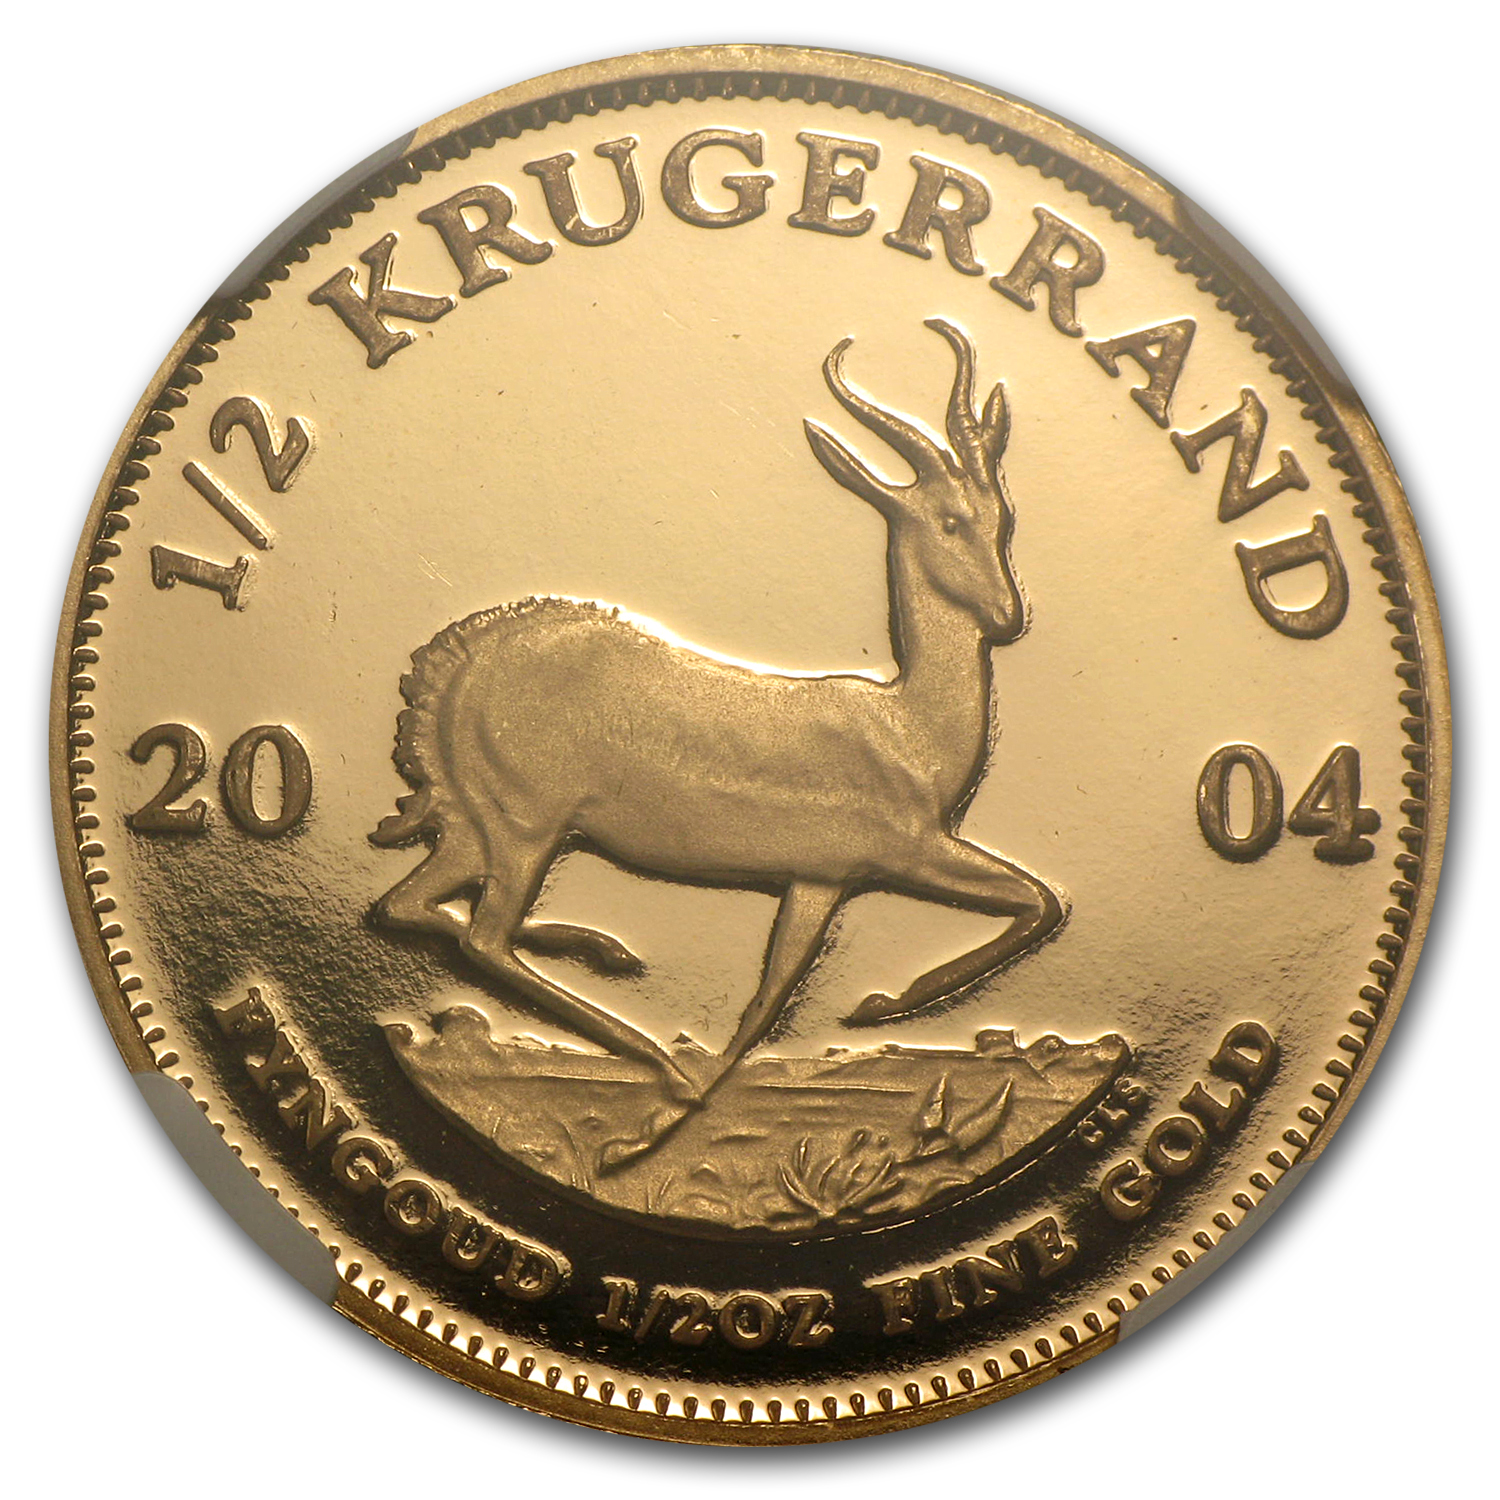 2004 1/2 oz Gold South African Krugerrand PF-67 NGC